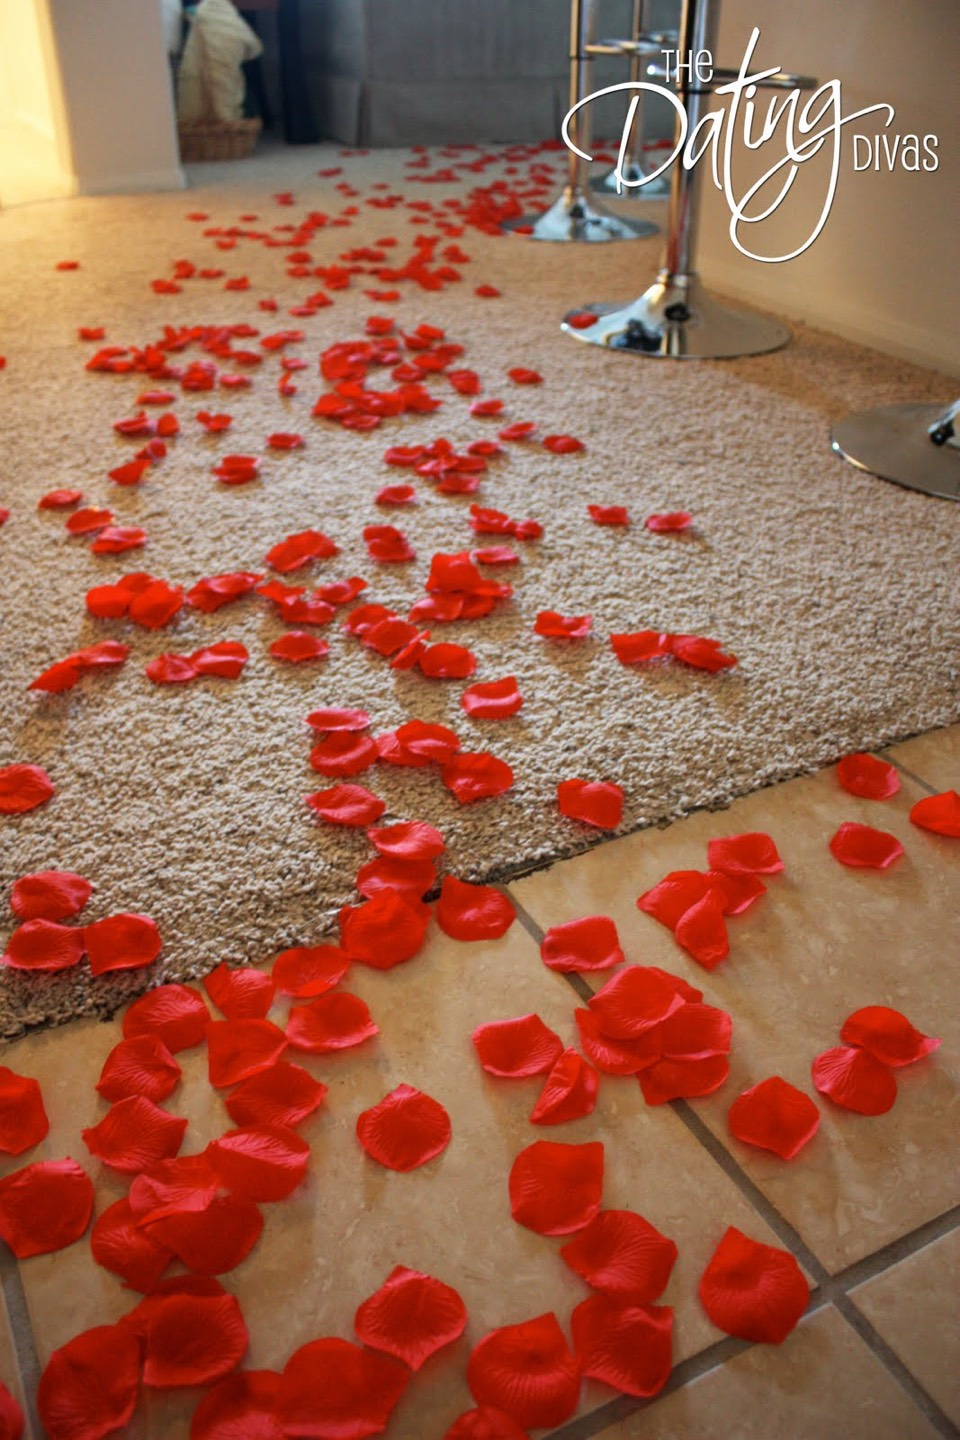 Set up a trail of rose petals to the living room or somewhere with a tv. Have popcorn and maybe wine set up, insert a romantic movie and a perfect night for your woman.